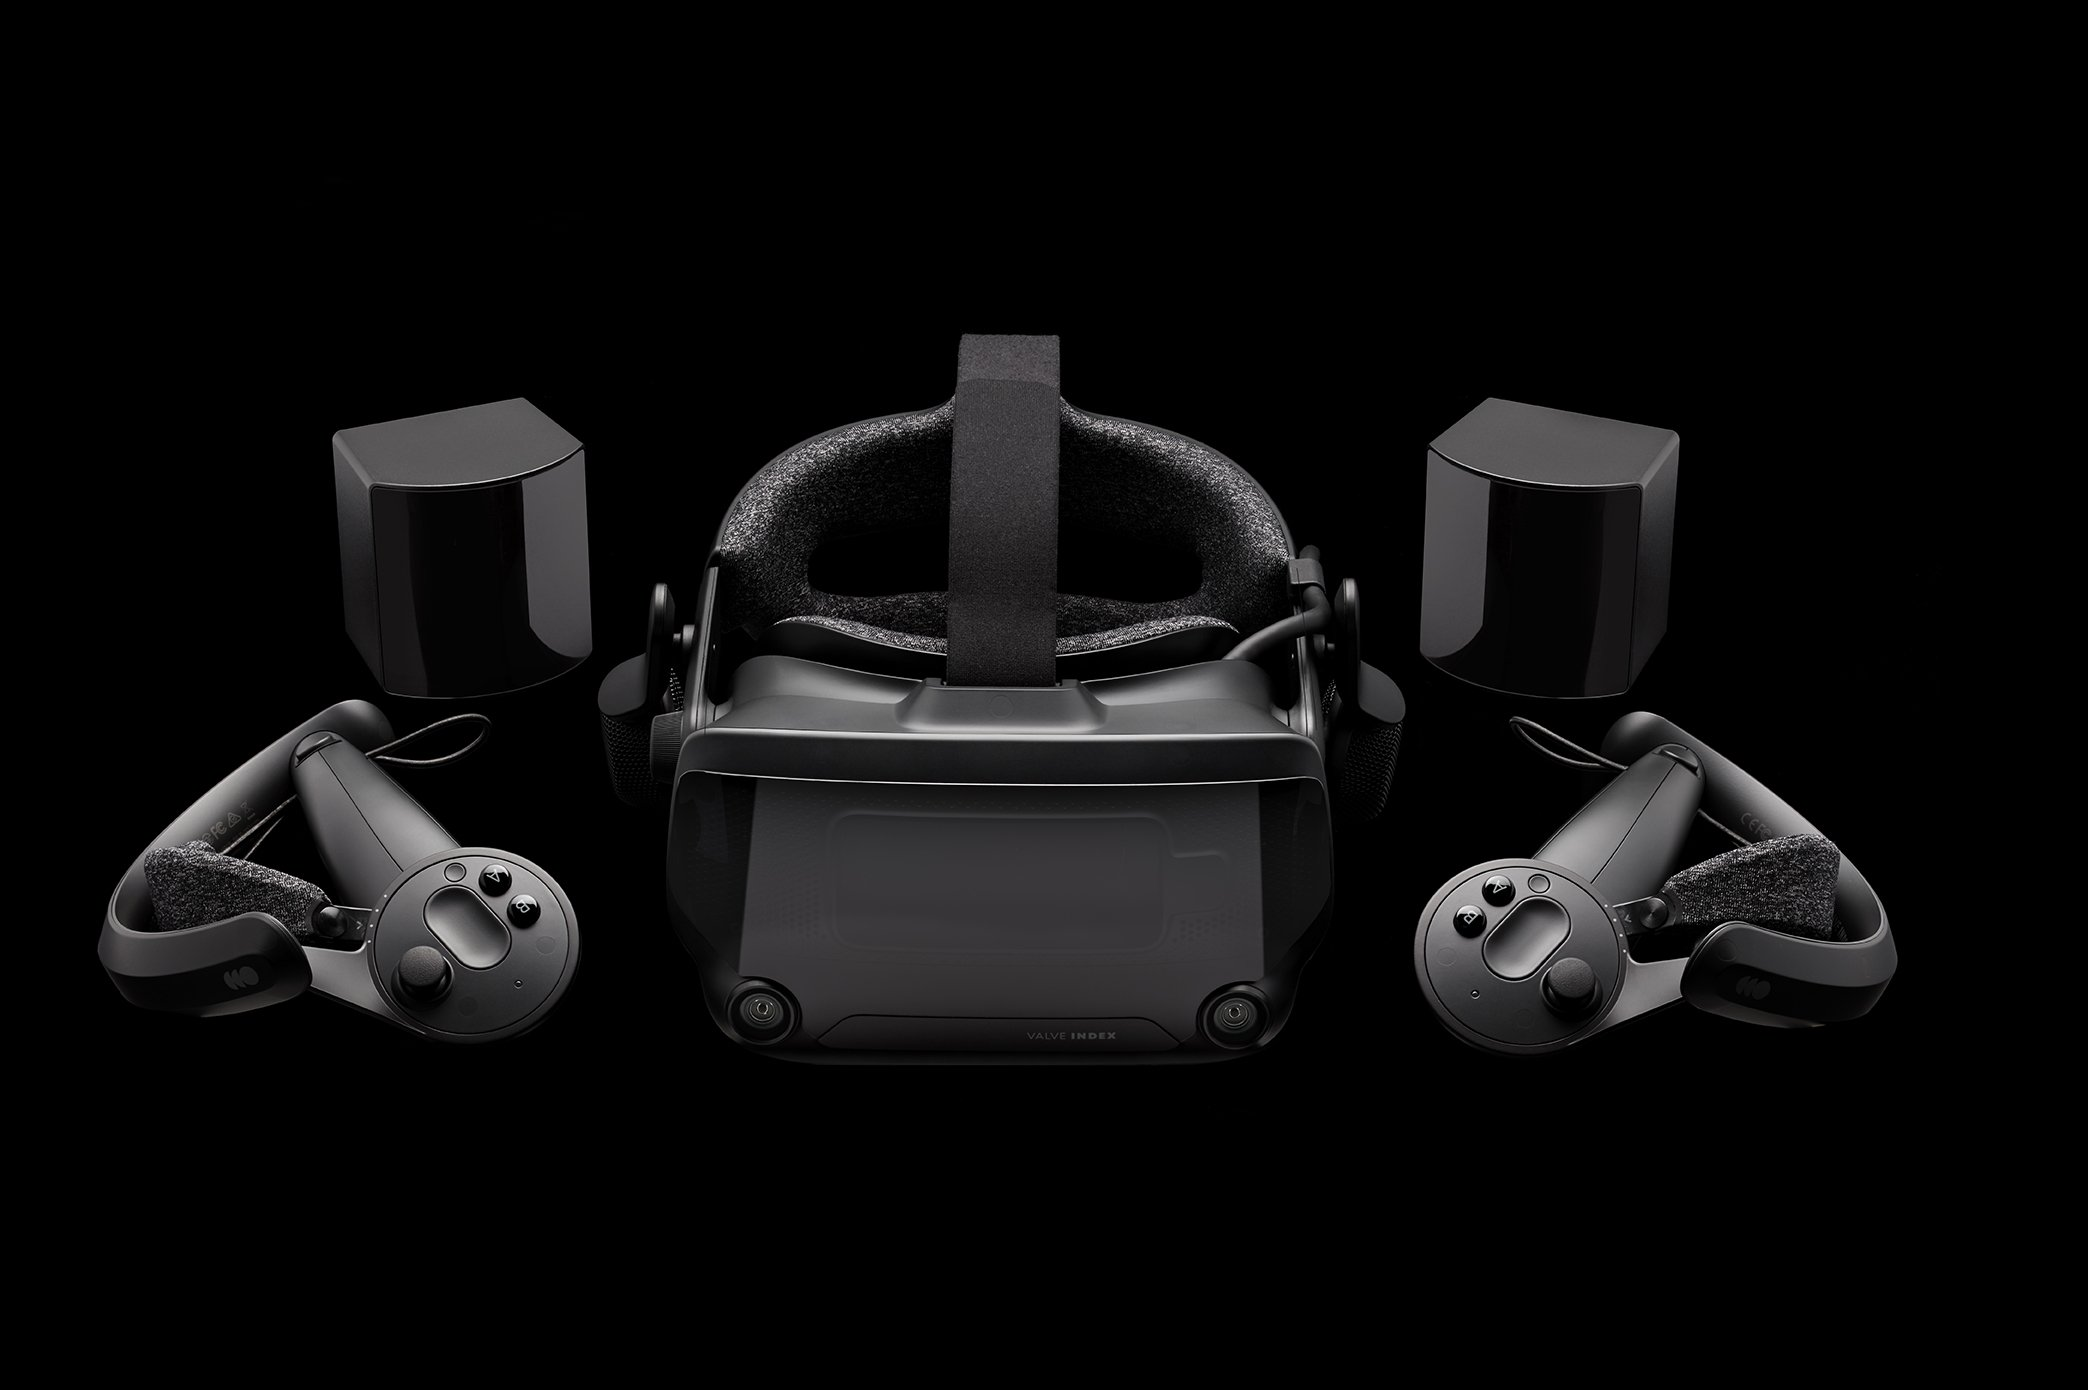 The Valve Index VR HMD with the new Knuckles controllers and sensors costs $999.